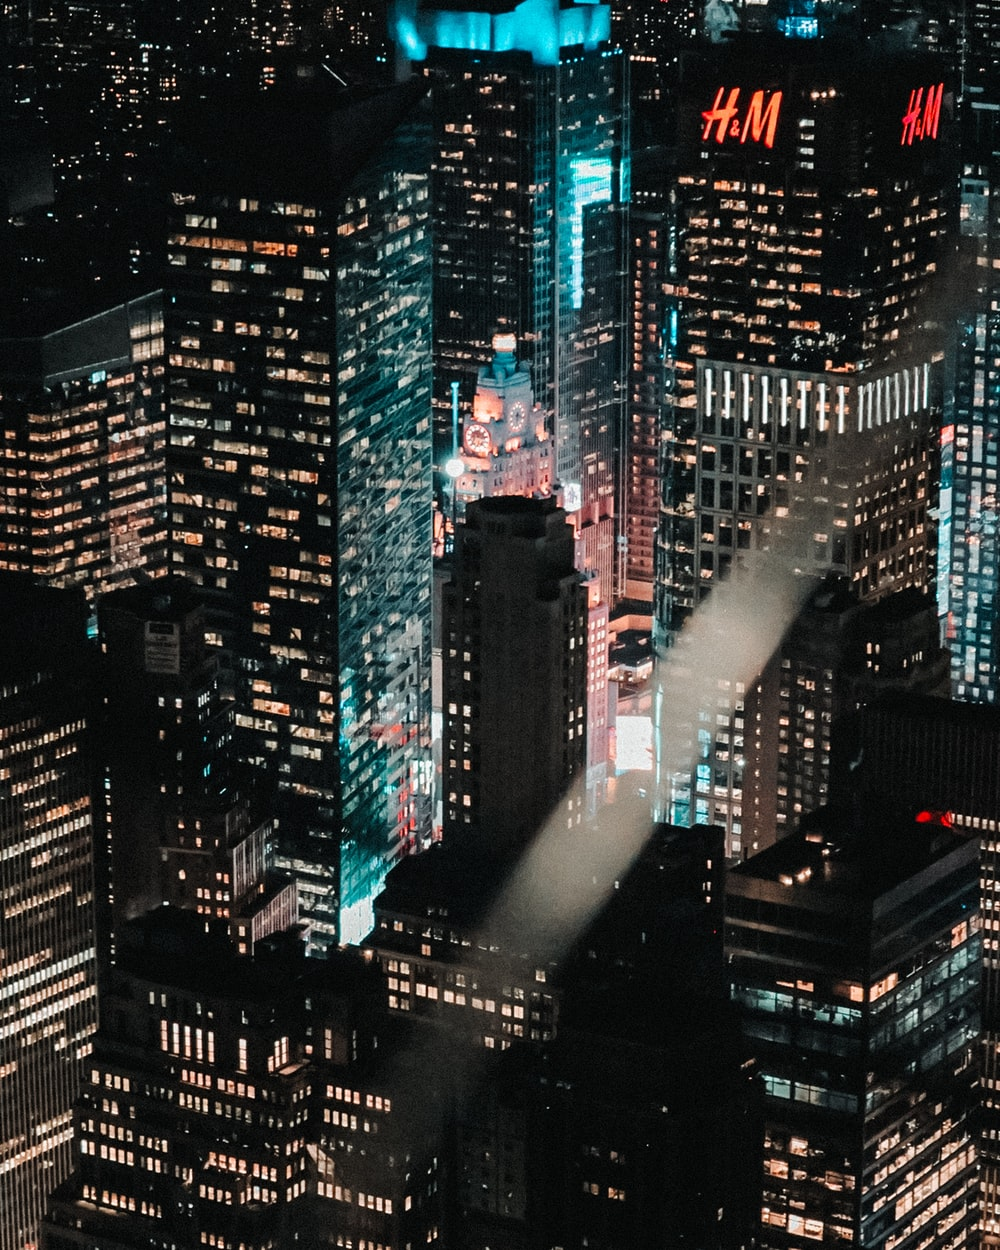 aerial photo of high-rise buildings during nighttime